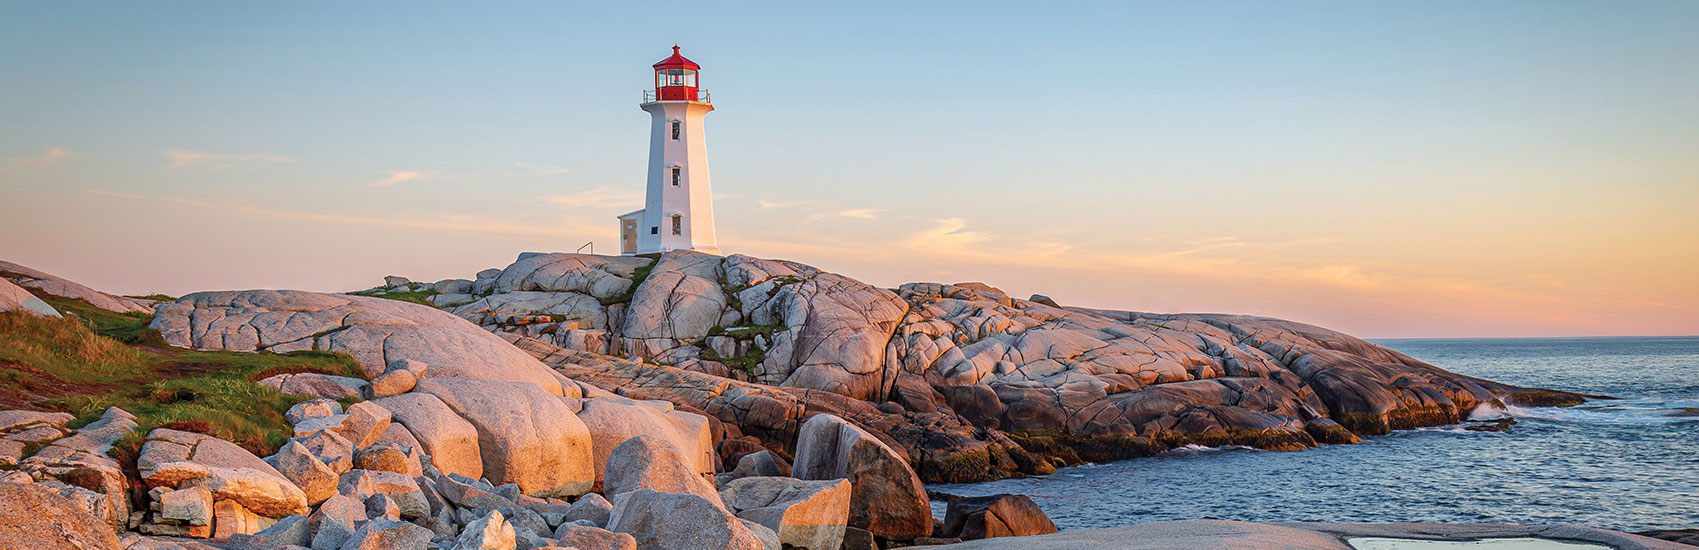 Save on 2021 Tours in Canada with Globus 2